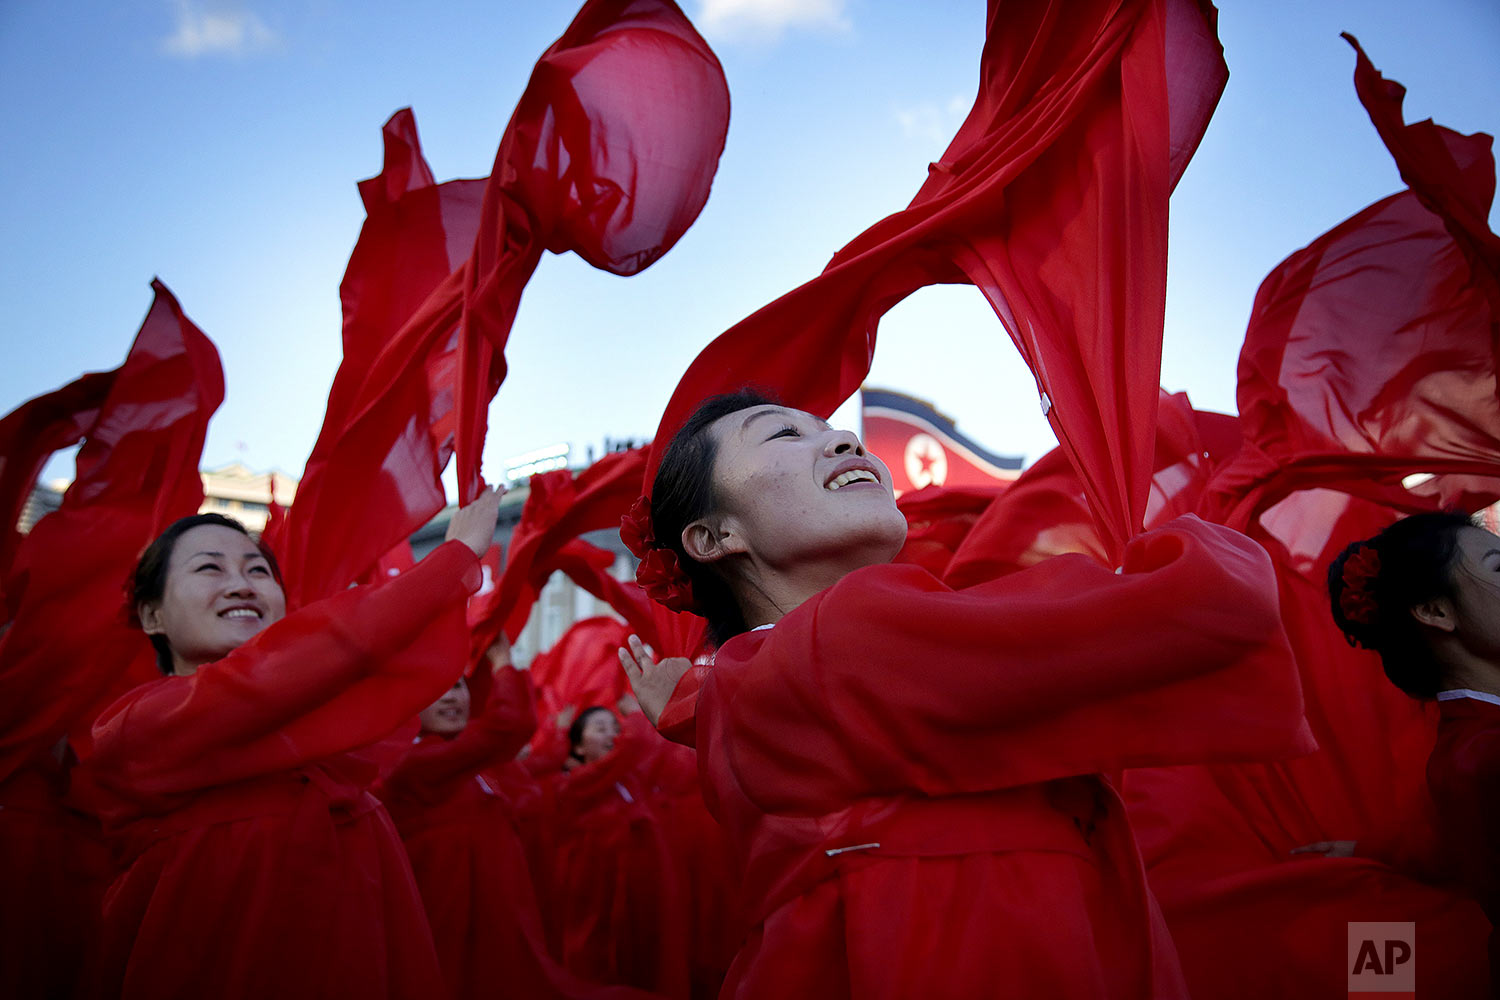 Dancers perform during a military parade in Kim Il Sung Square in Pyongyang, North Korea, on Oct. 10, 2015. (AP Photo/Wong Maye-E)